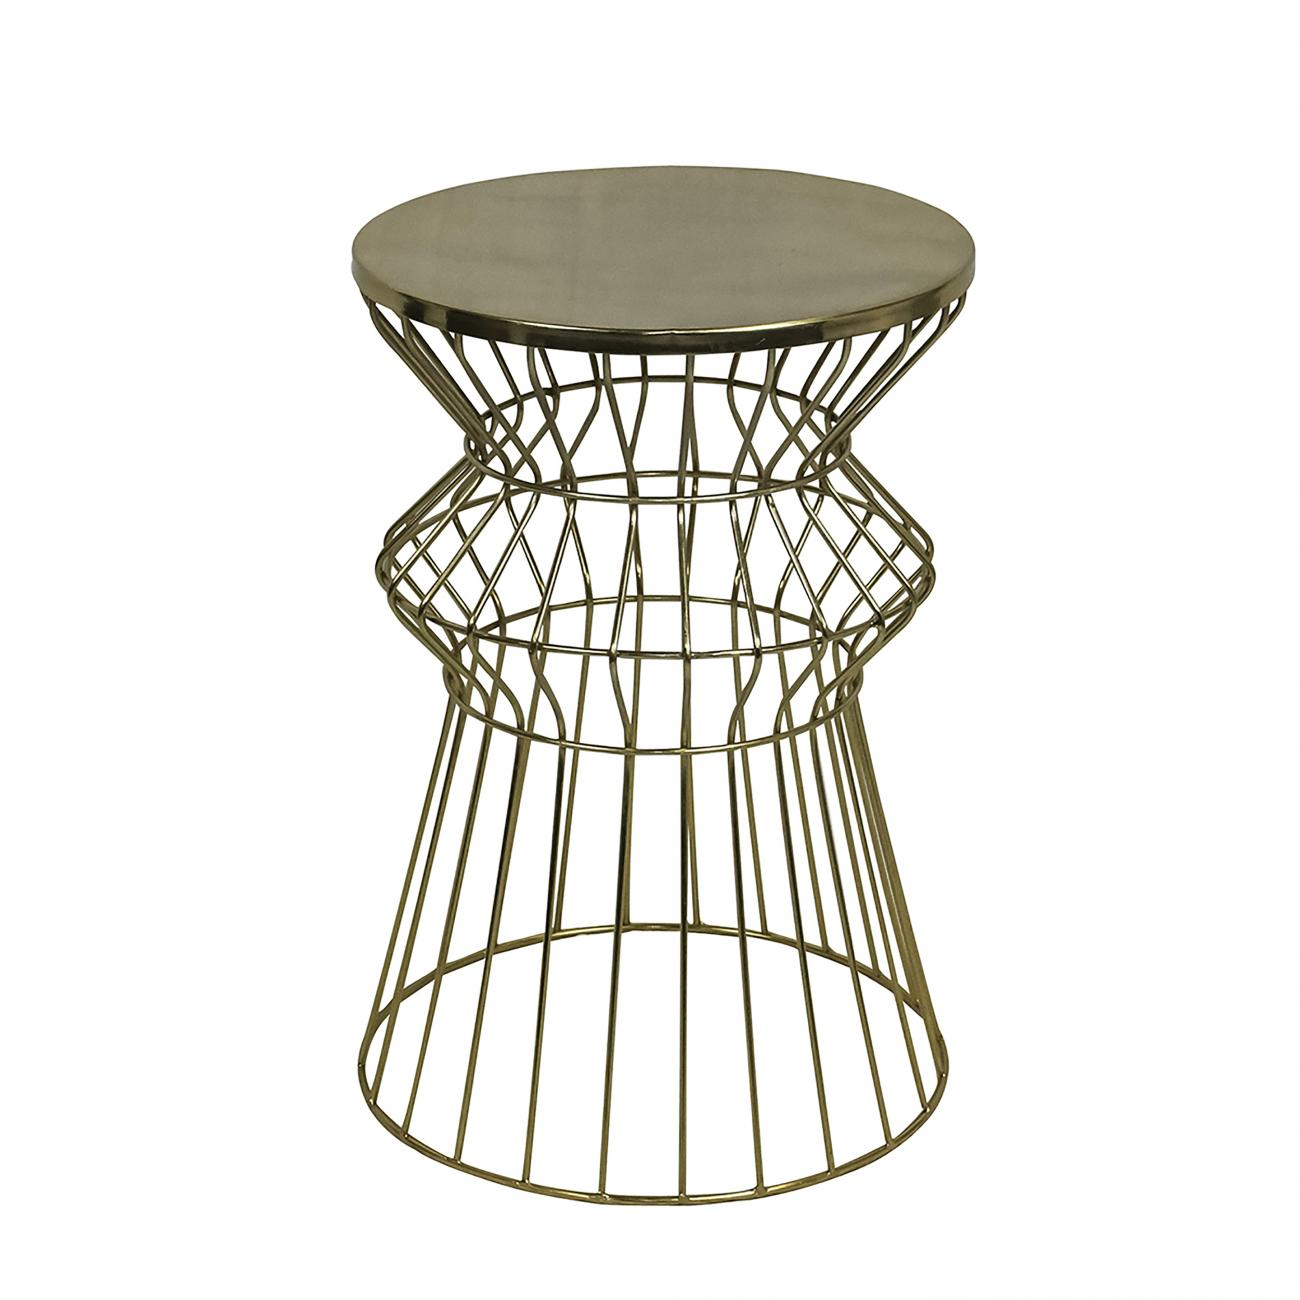 accent pieces peak event services wfrtsmdgo gold modwire side table wire brown wicker outdoor furniture low light houseplants white glass lamp round farmhouse chairs with arms